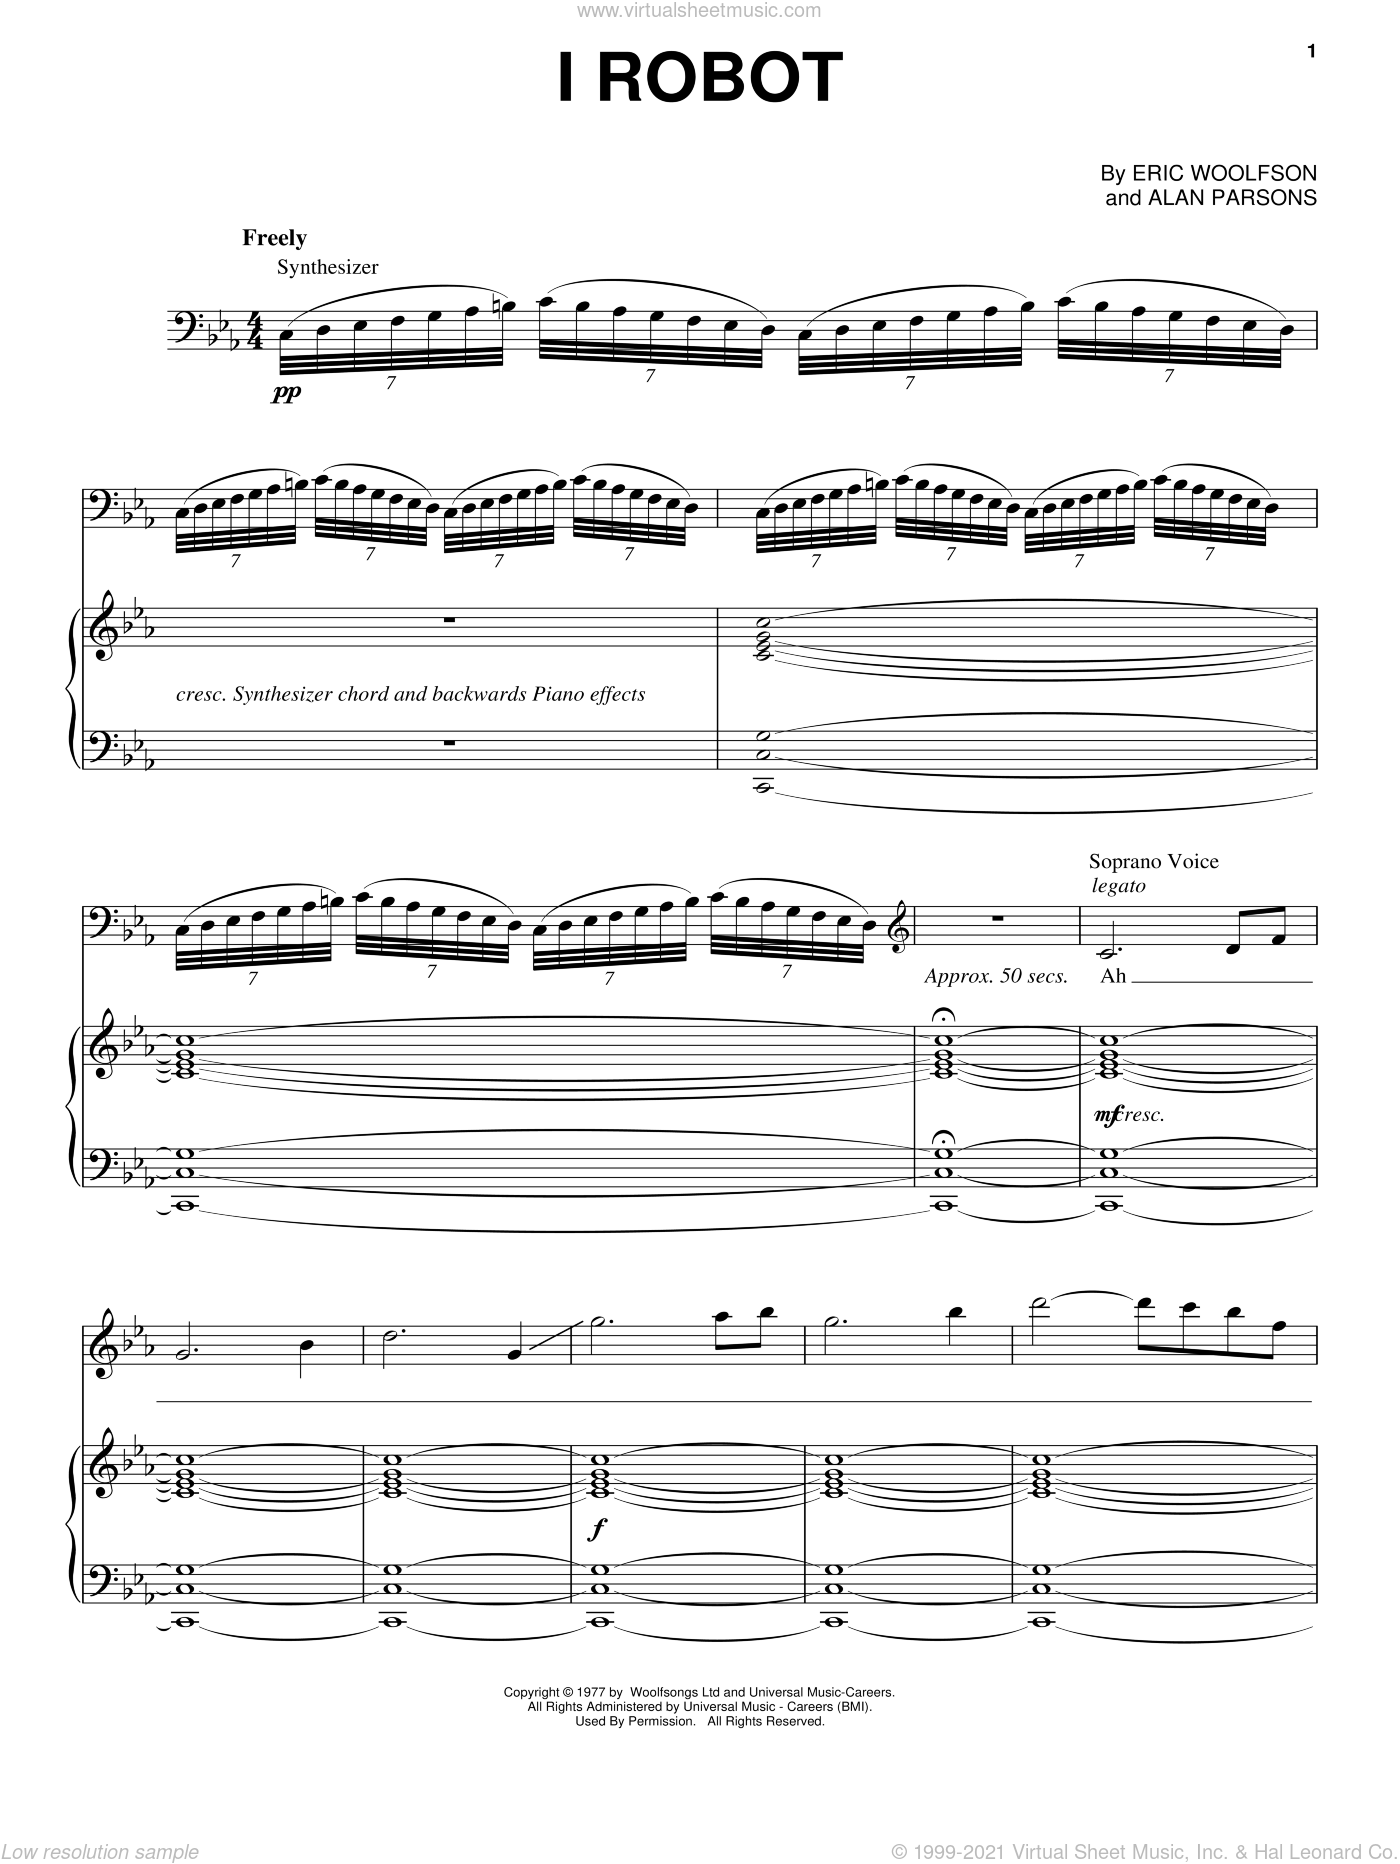 I Robot sheet music for voice, piano or guitar by Eric Woolfson